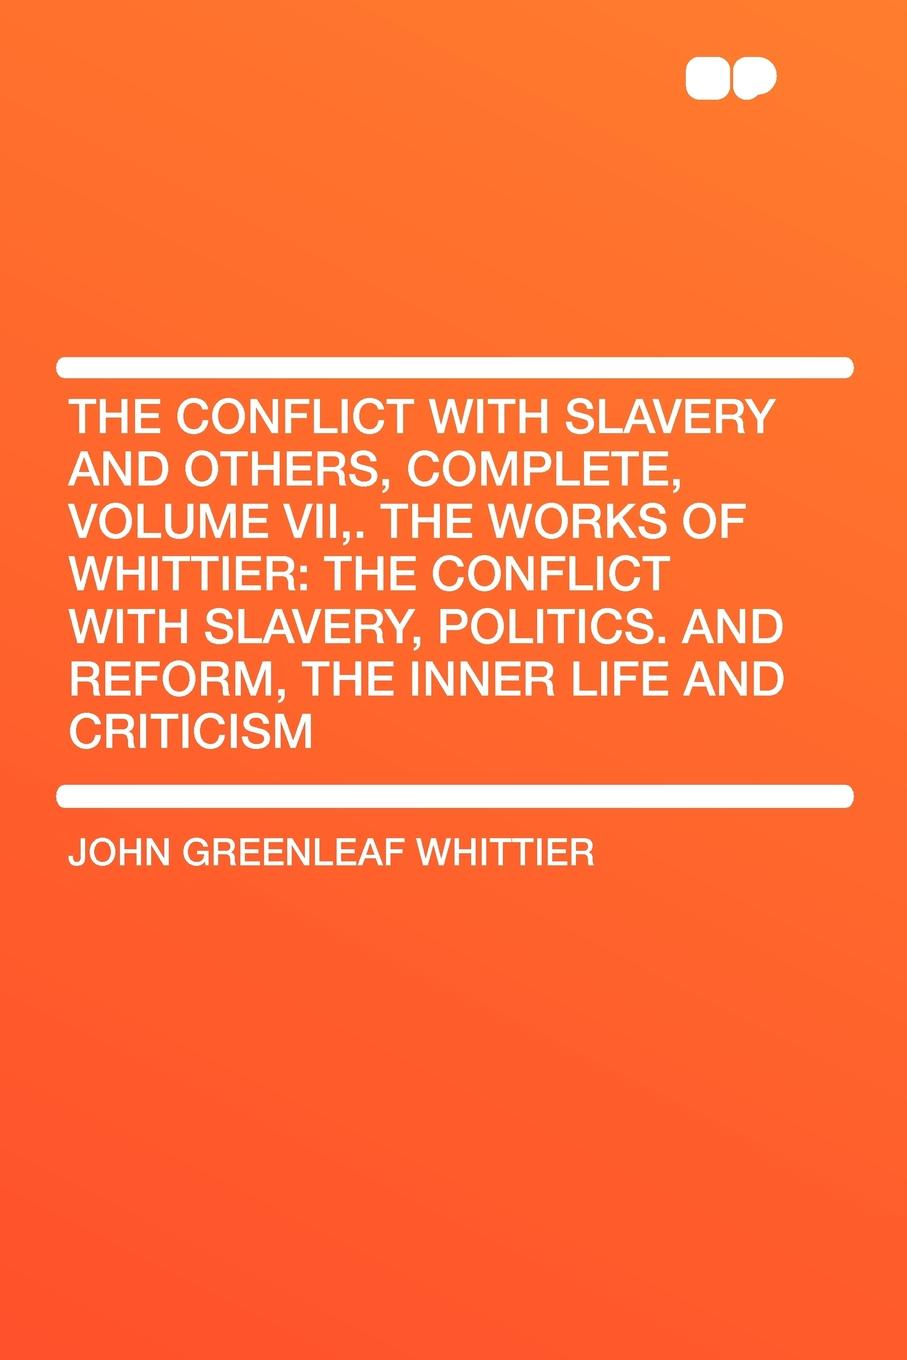 John Greenleaf Whittier The Conflict with Slavery and Others, Complete, Volume VII,. The Works of Whittier. the Conflict with Slavery, Politics. and Reform, the Inner Life and Criticism john brademas the politics of education conflict and consensus on capitol hill